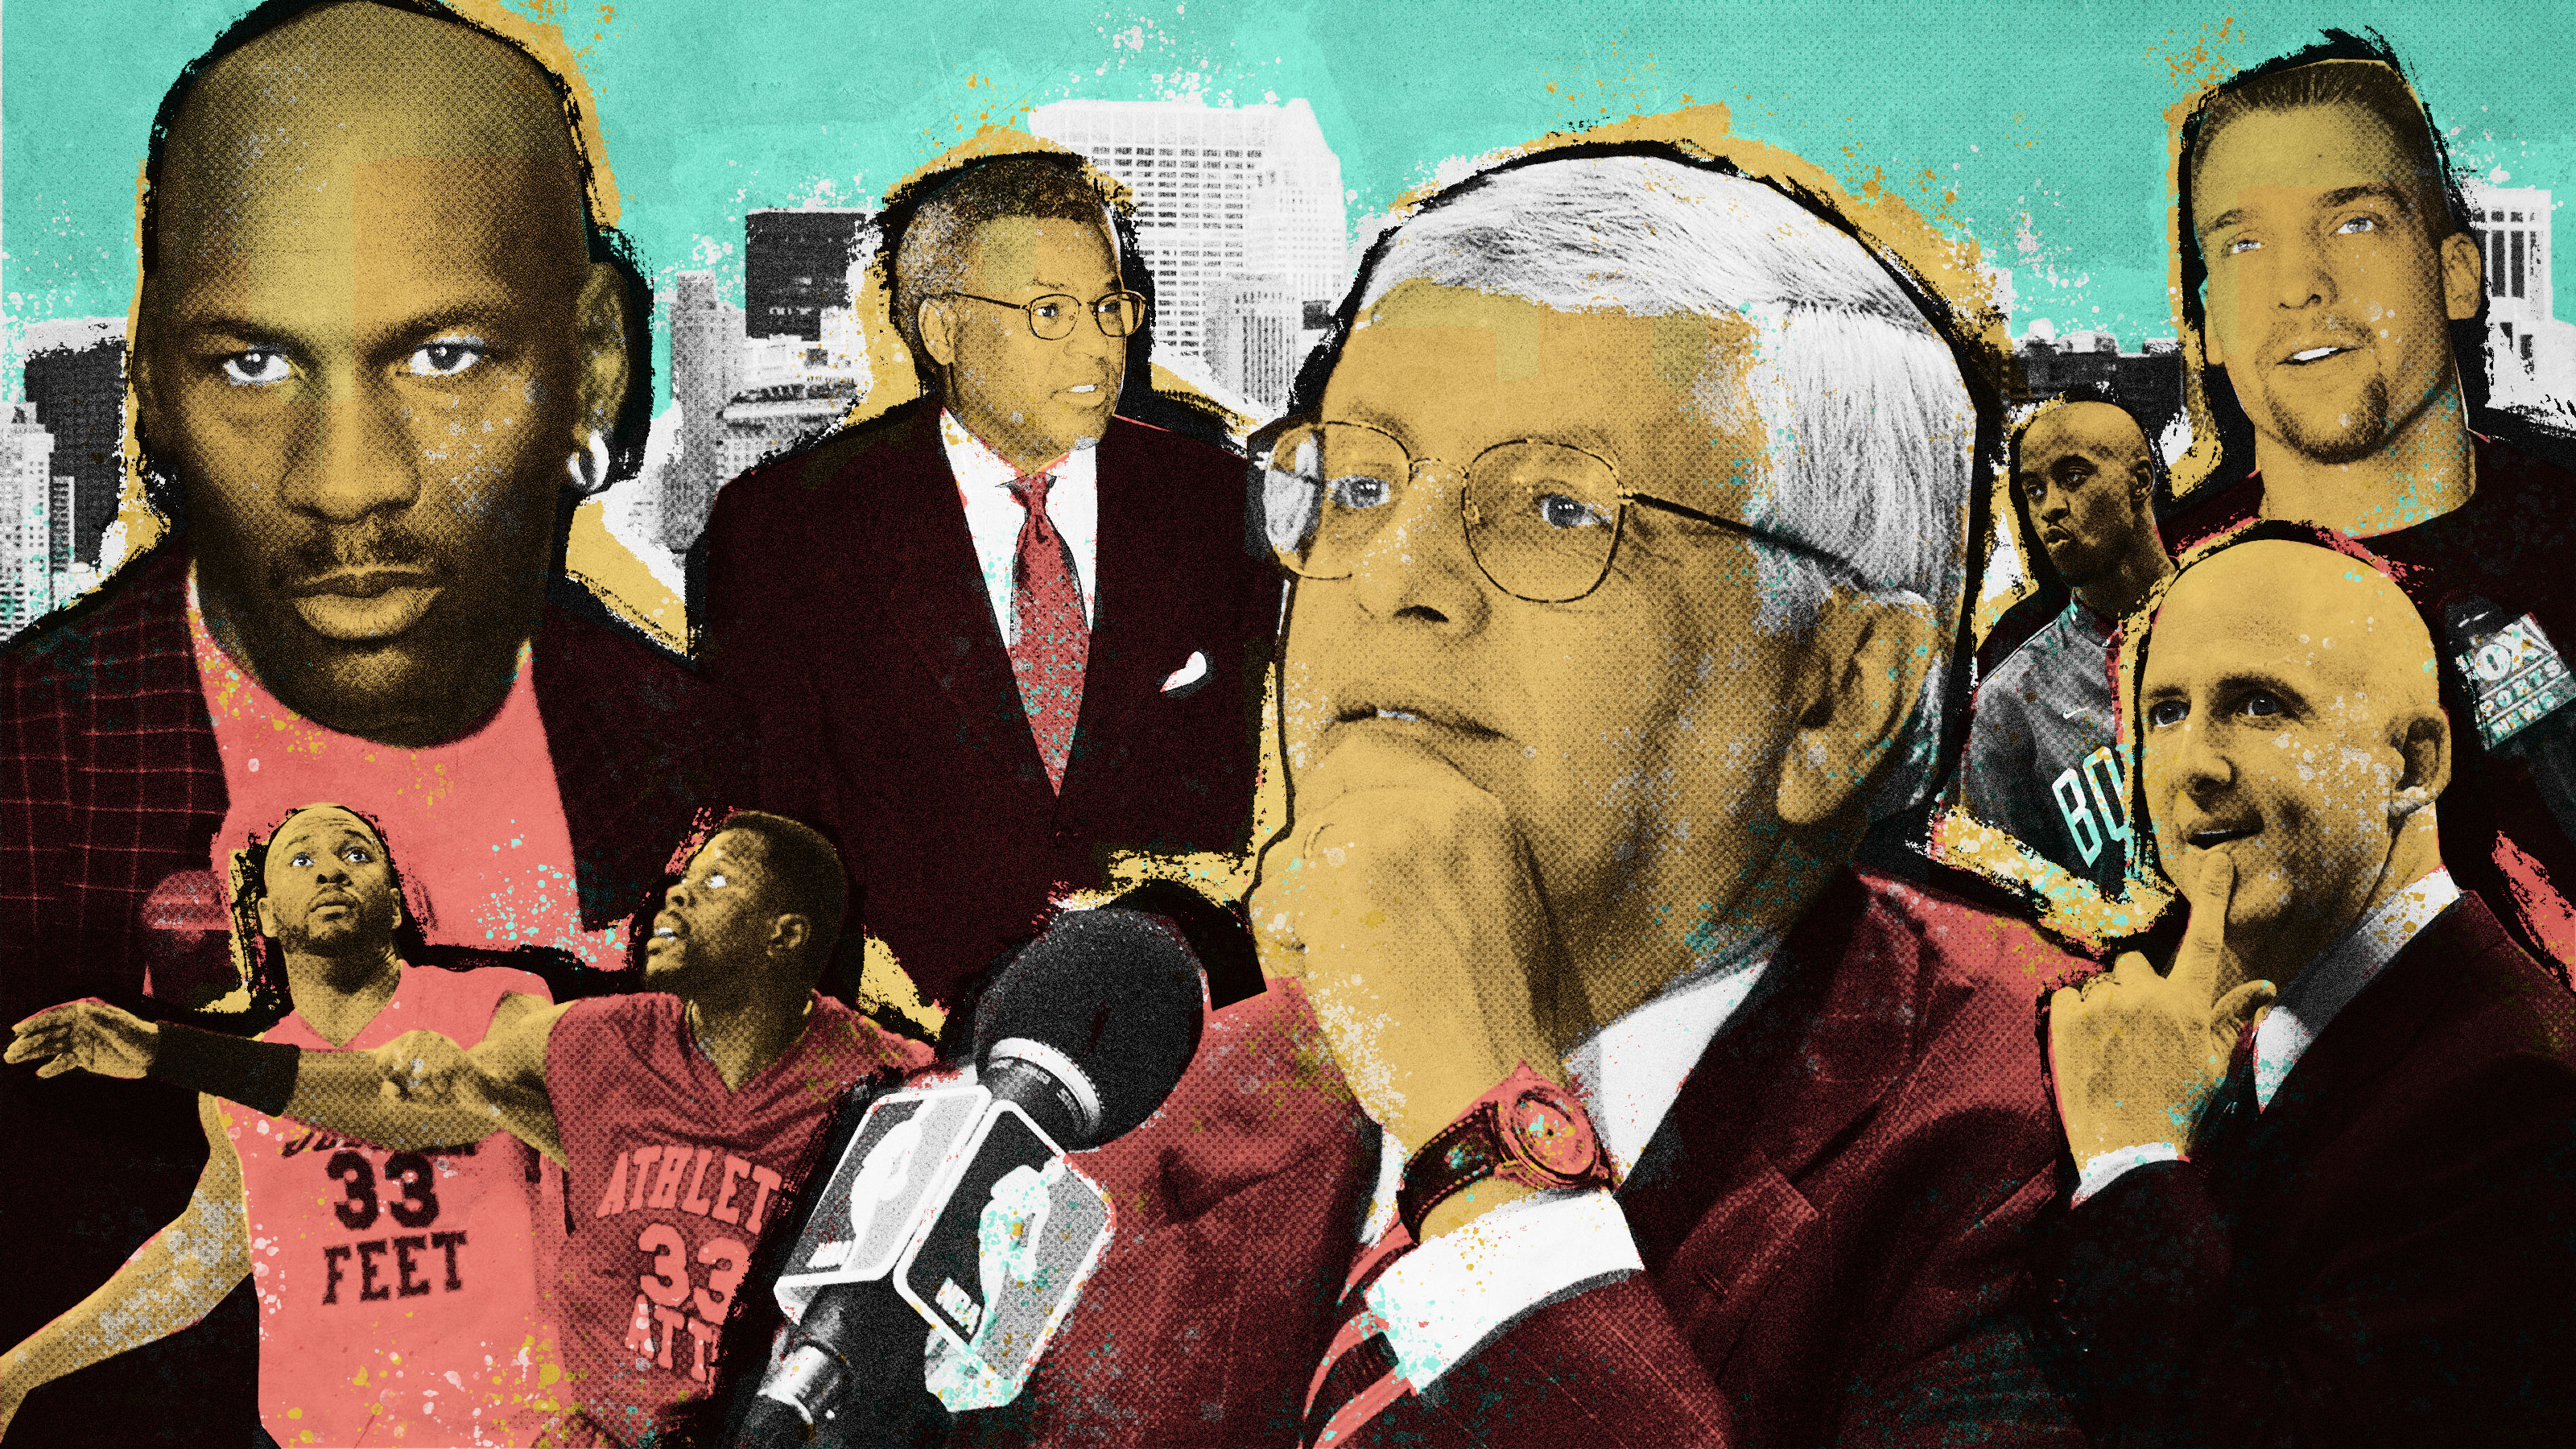 A photo illustration featuring images of figures from the 1998-99 NBA lockout, including former commissioner David Stern, Michael Jordan, and Billy Hunter